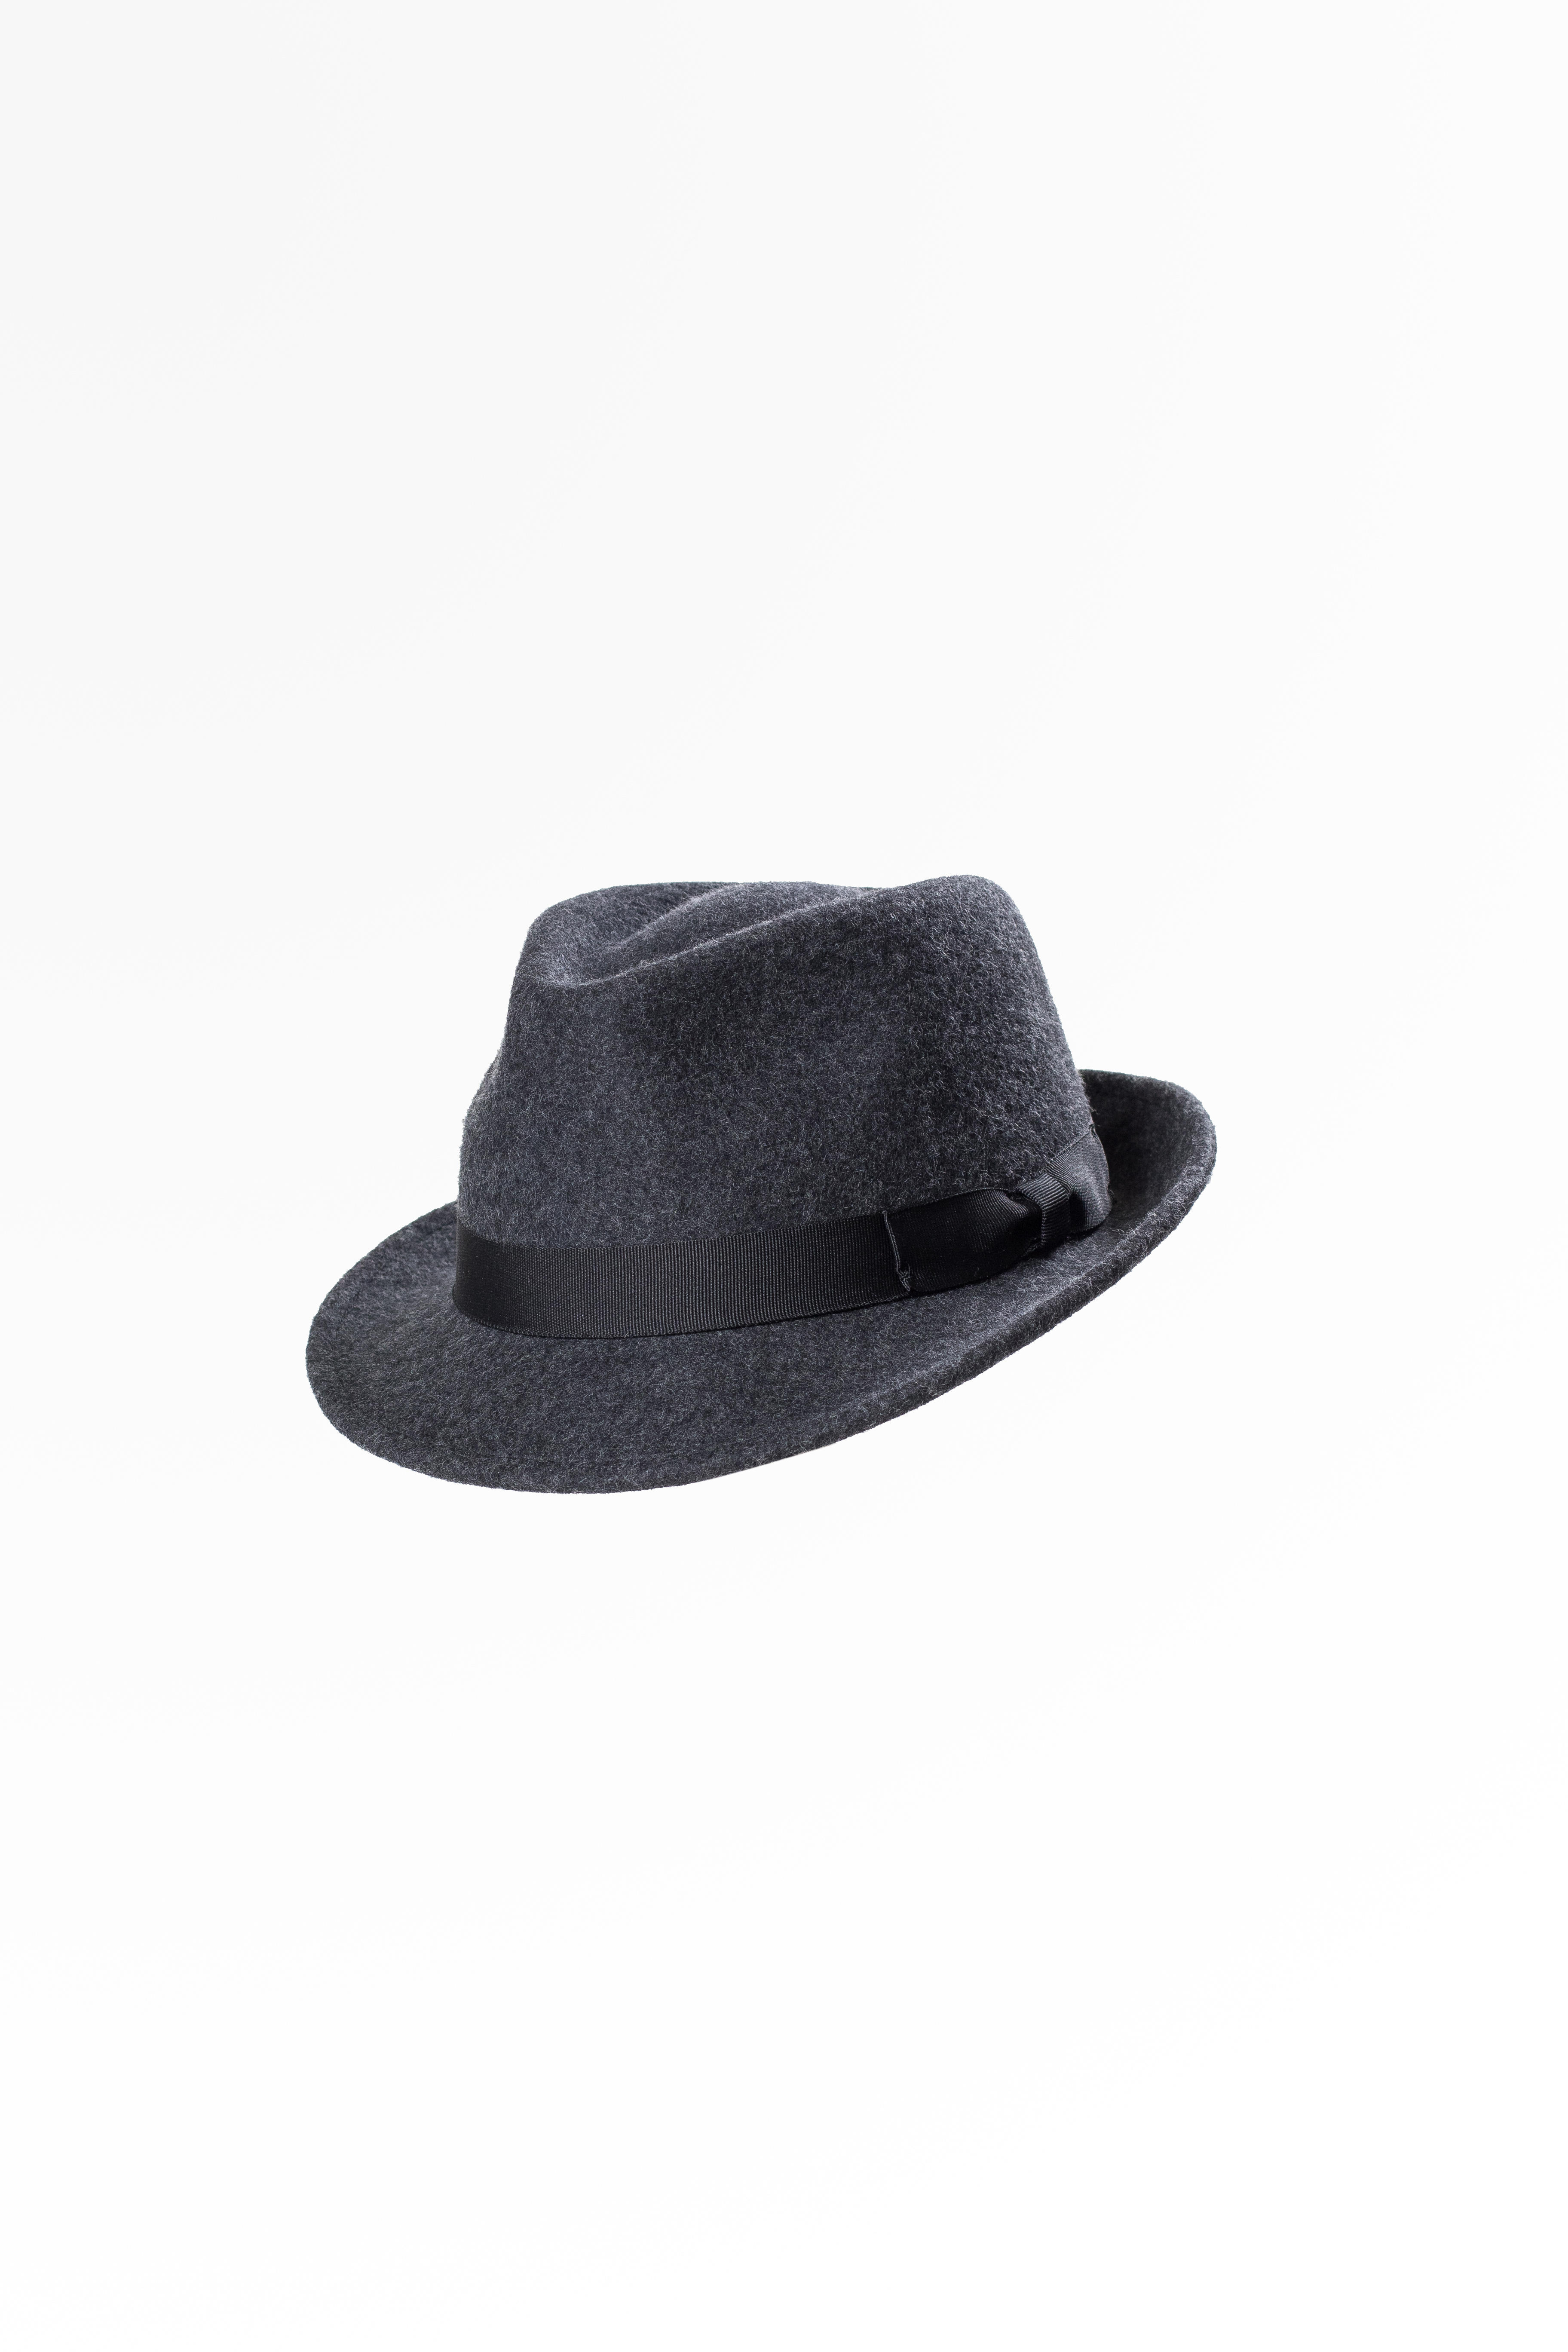 Wool Felt Trilby Hat Mix Charcoal